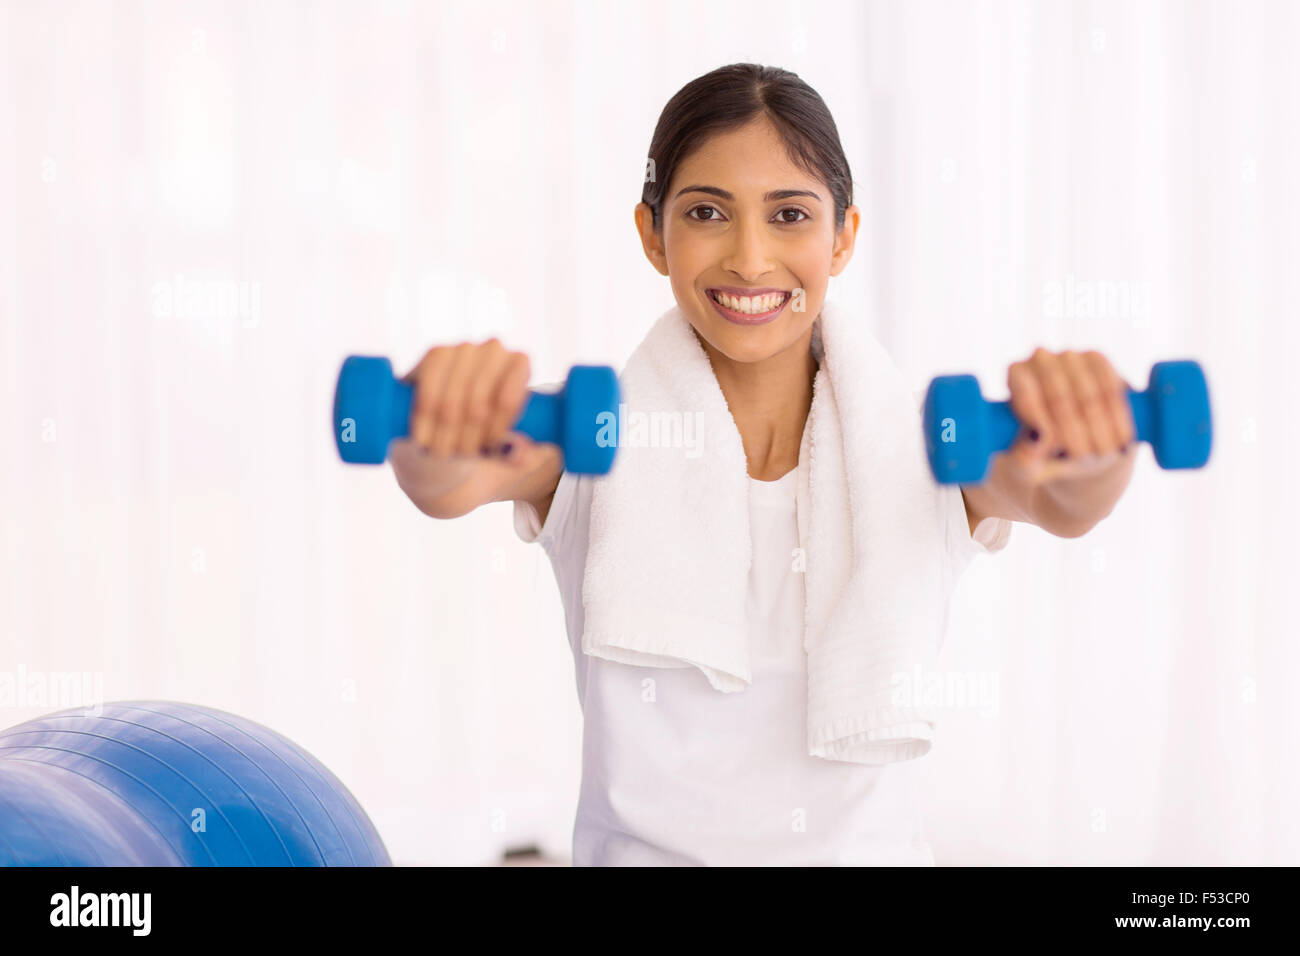 cheerful Indian woman working out with dumbbells - Stock Image